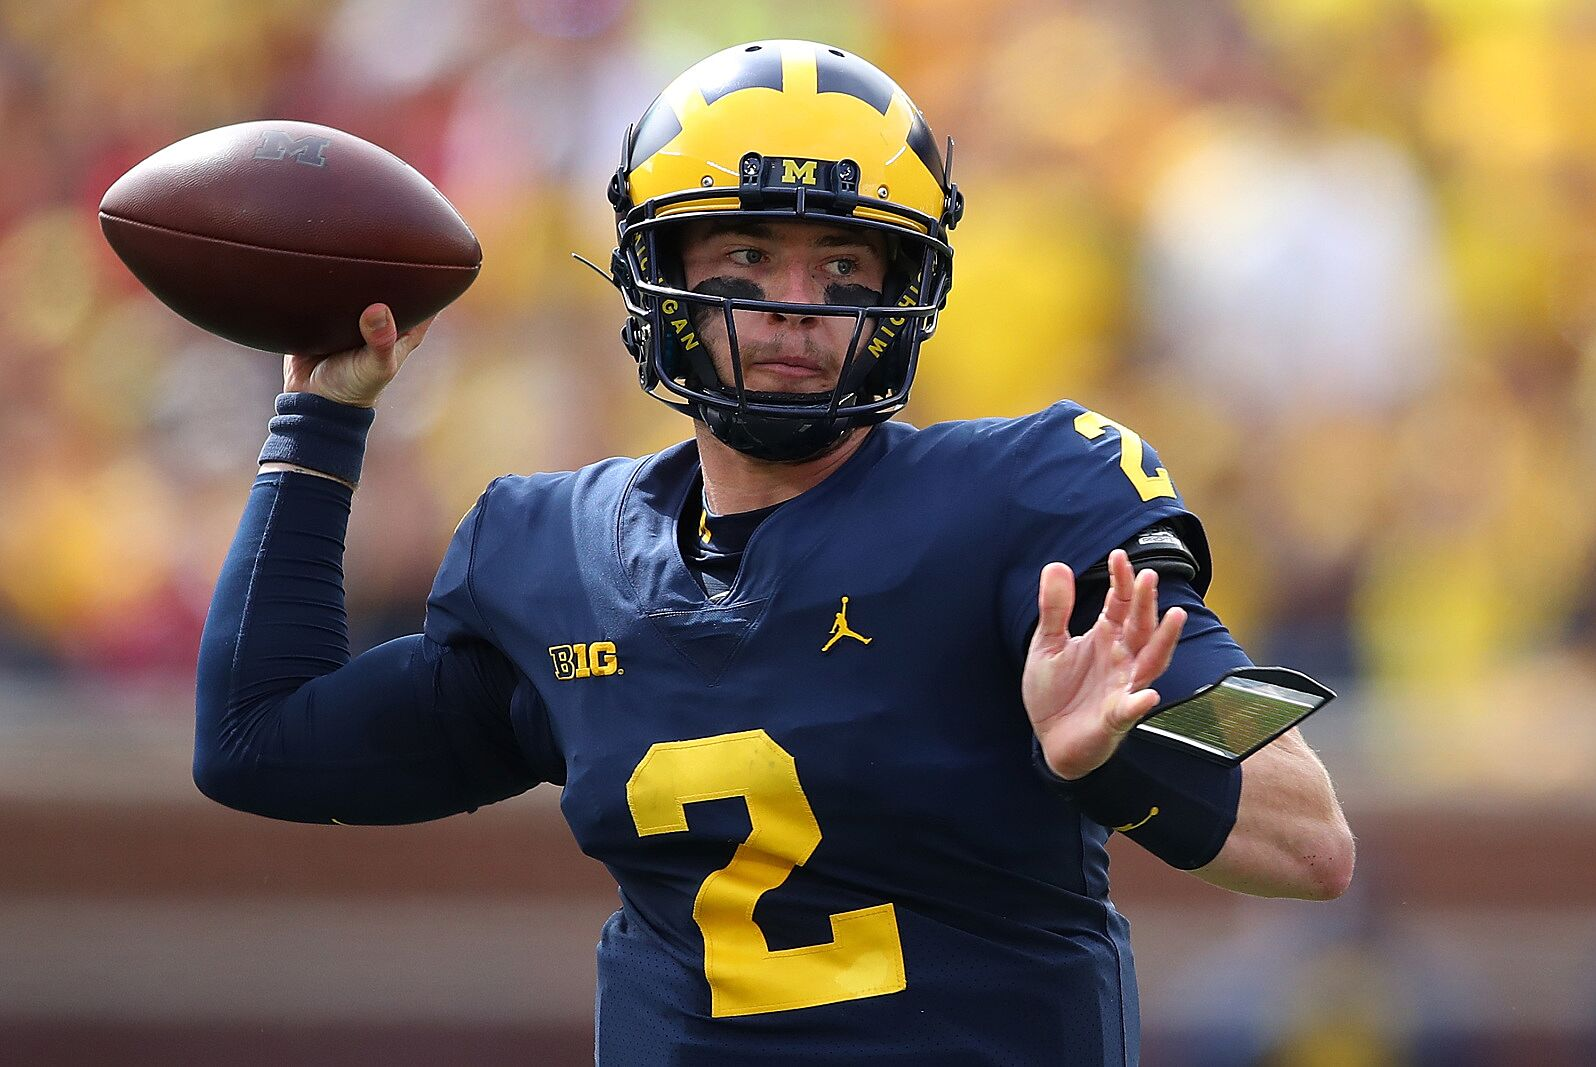 Michigan Football: Ranking the Top 10 players on the current roster